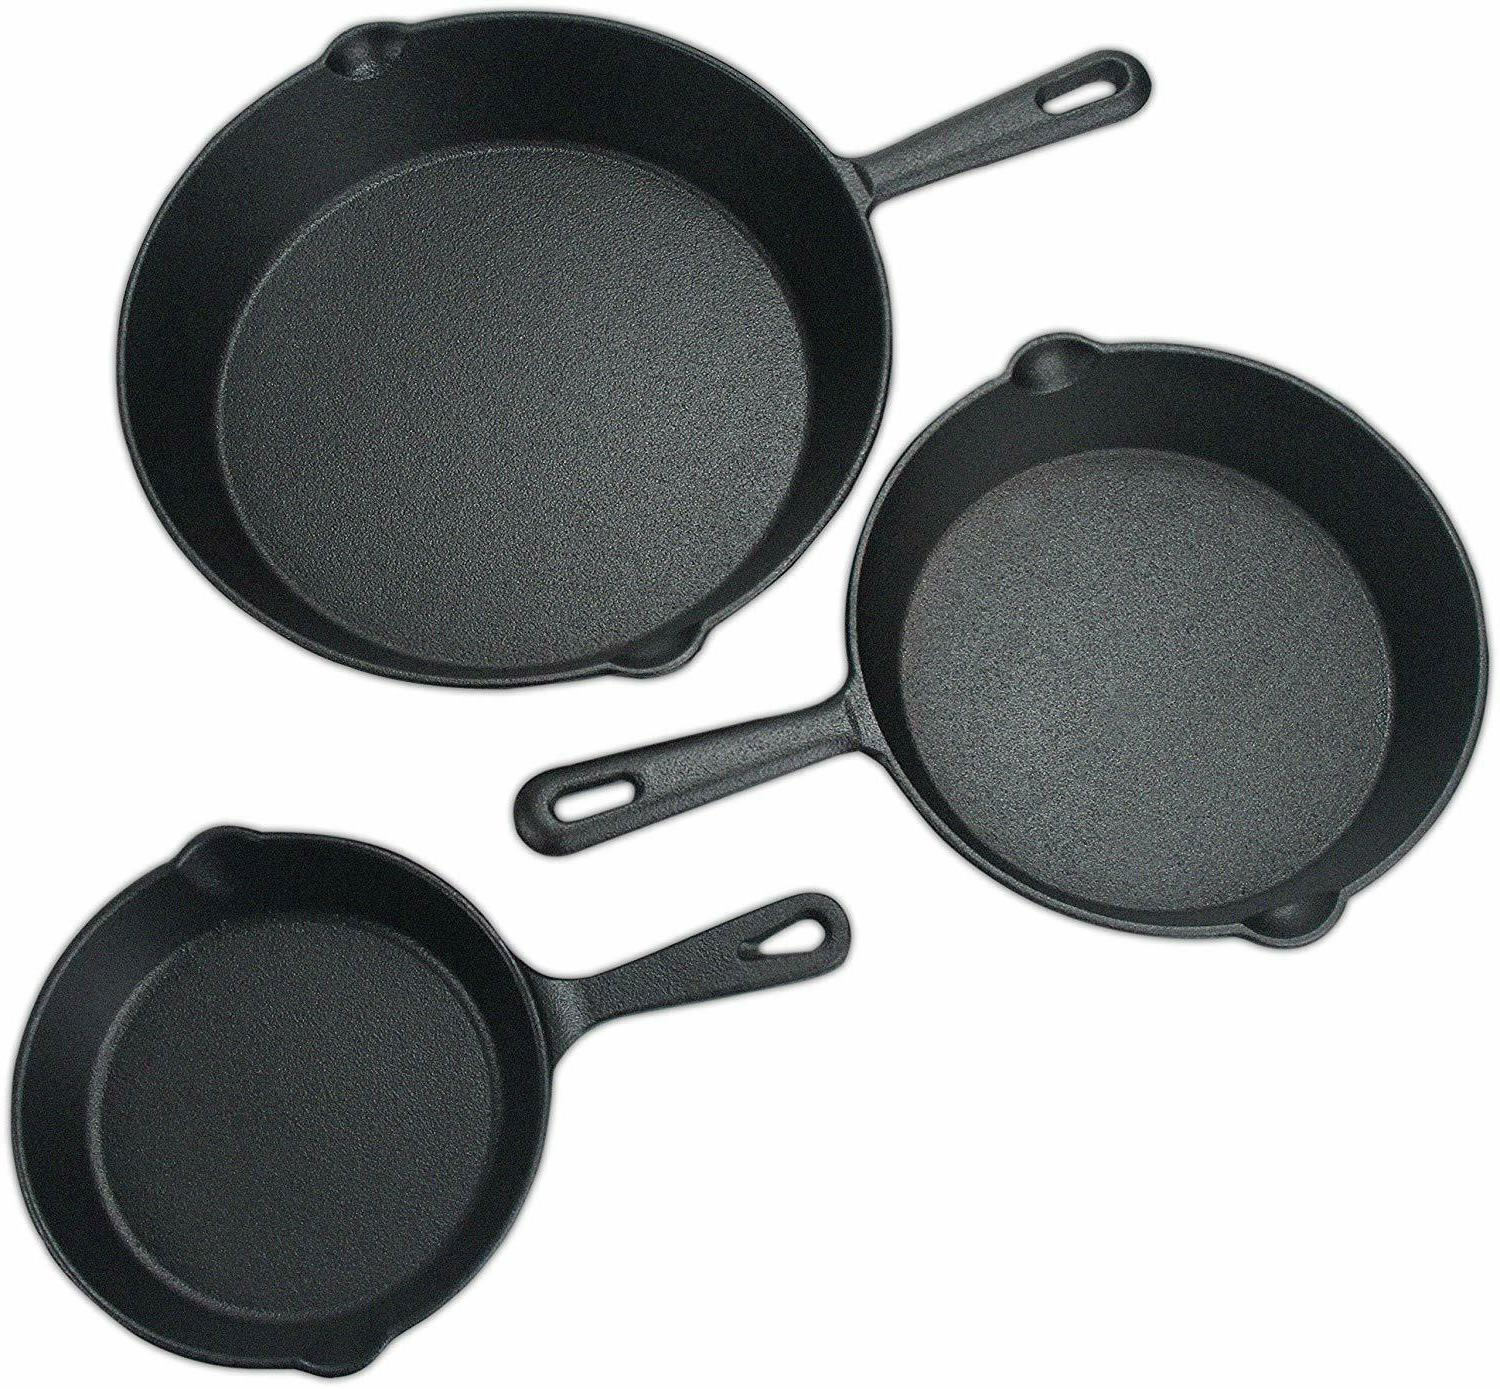 "Pre Seasoned Cast Iron Skillet Set 3 Pieces 6"", 8"" & 10"" by"